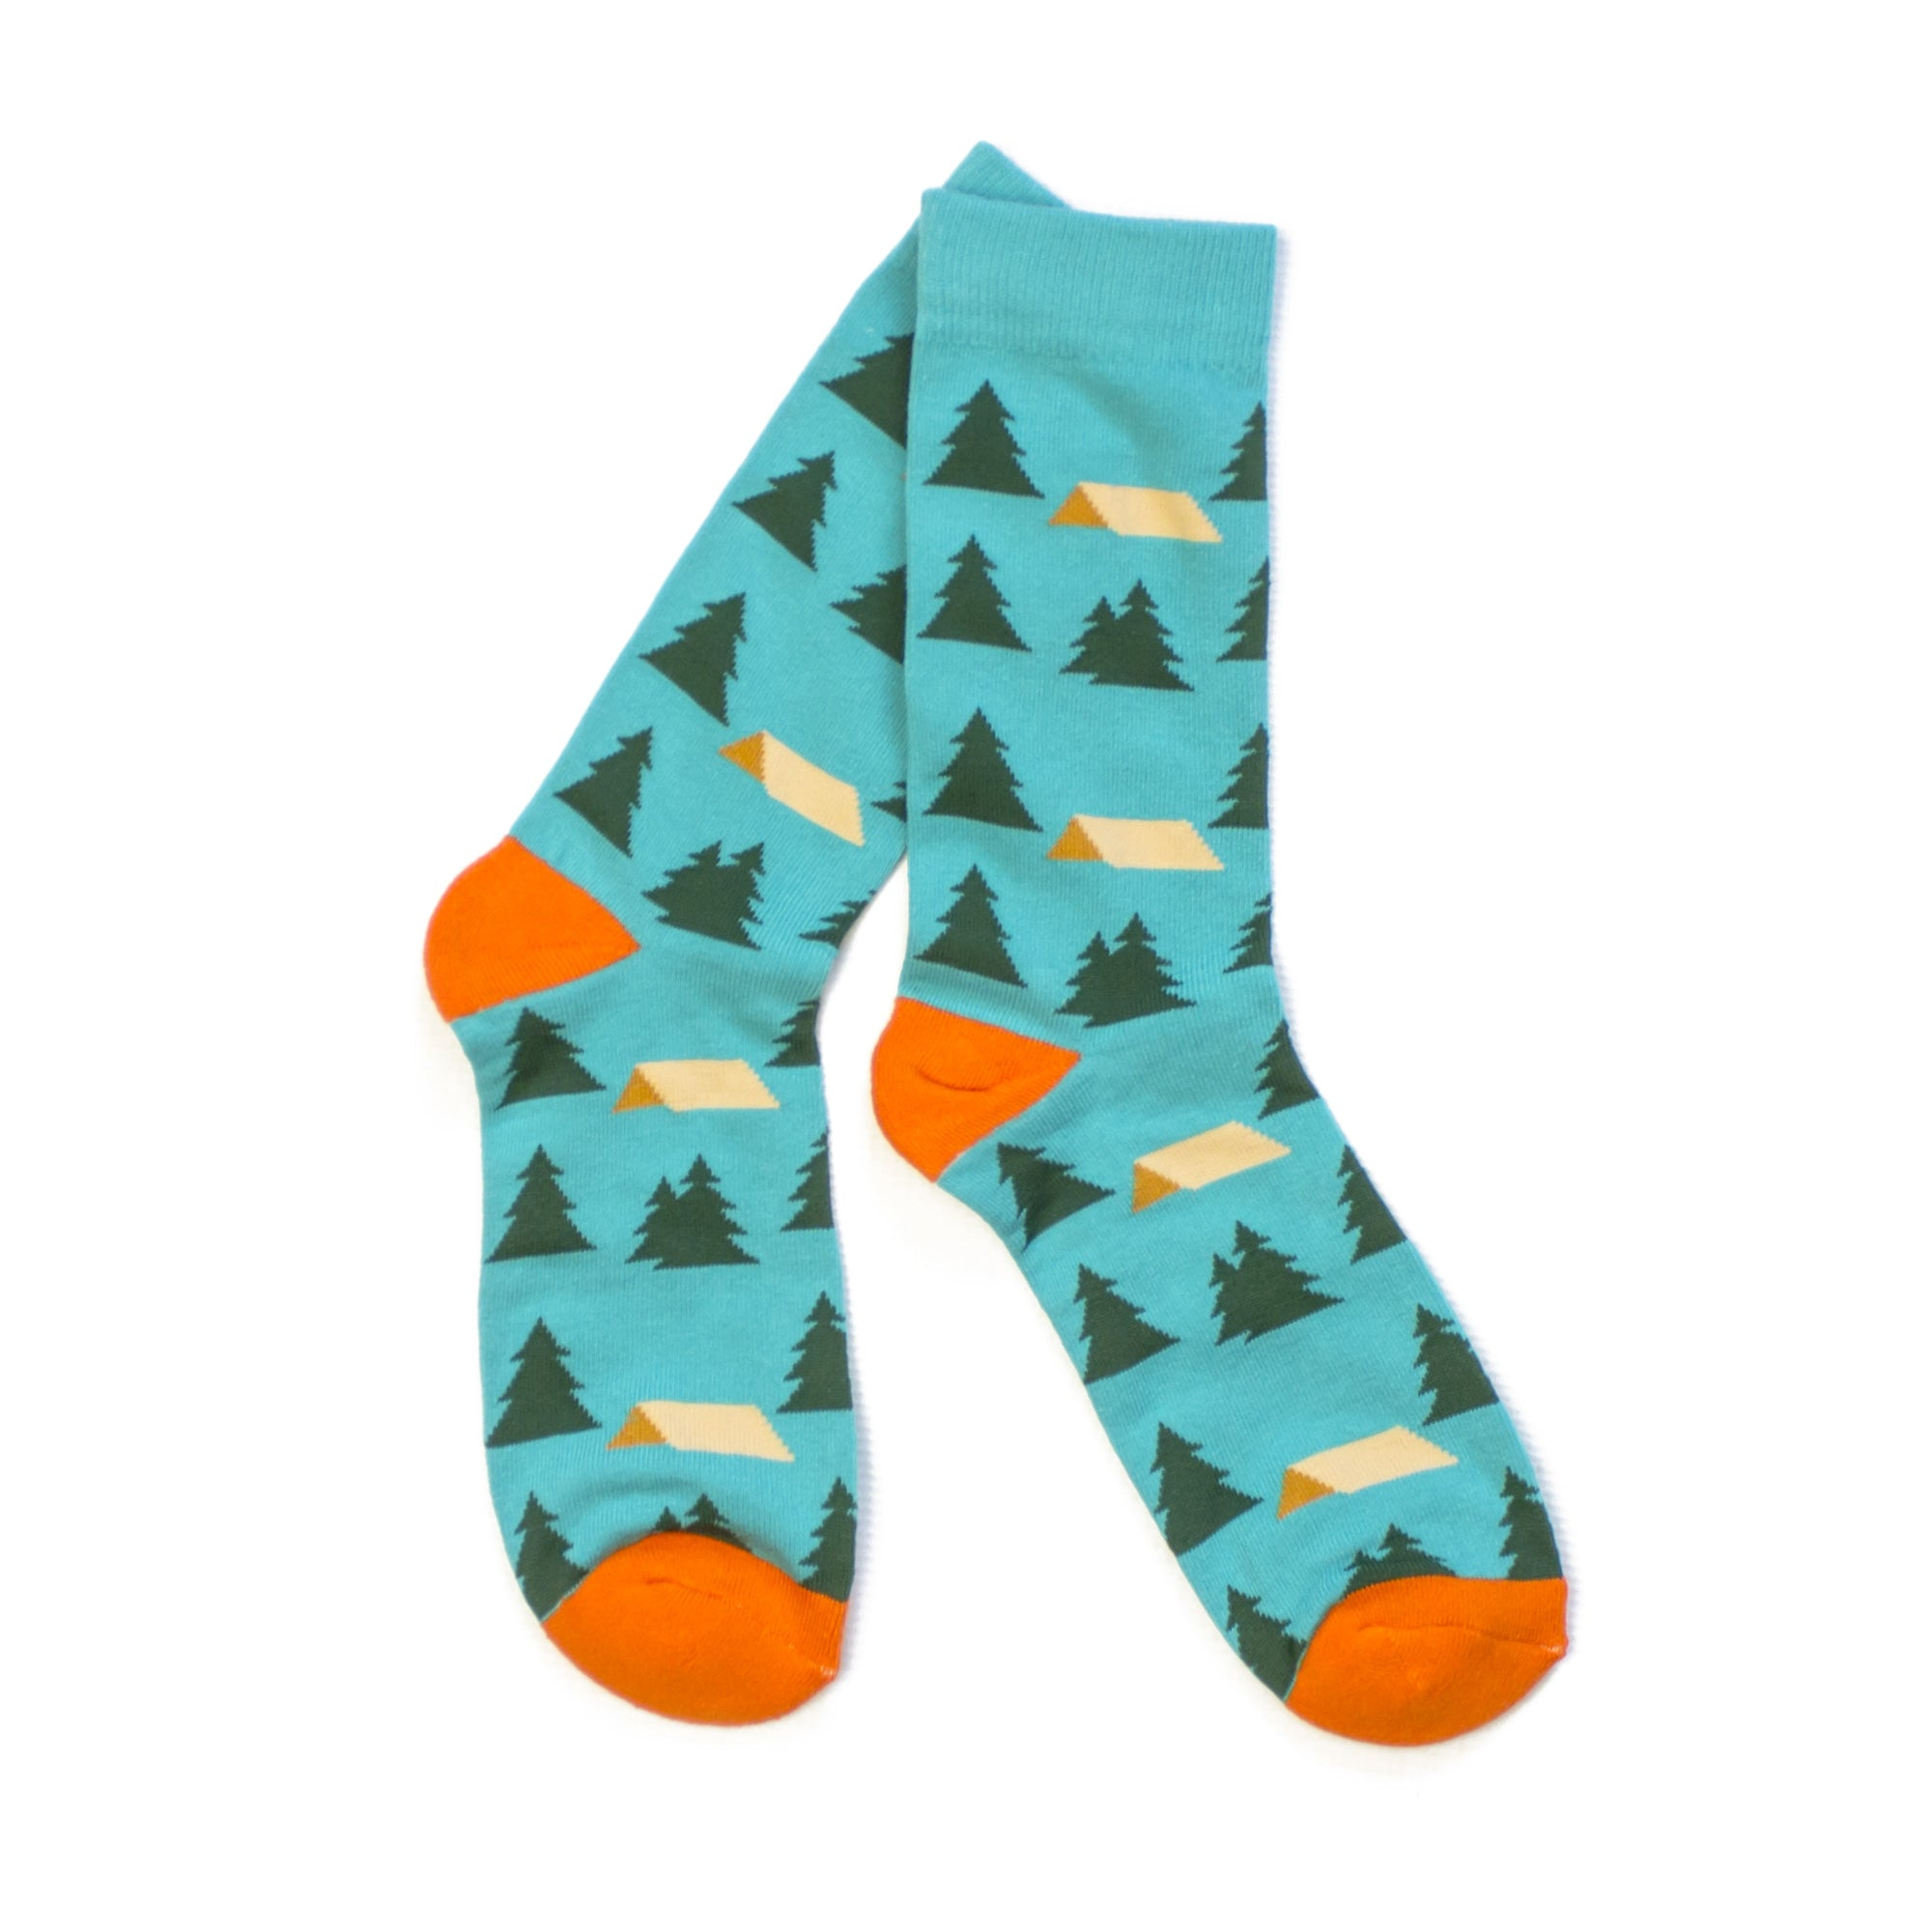 Happy Camper Socks-Socks-KY for KY Store